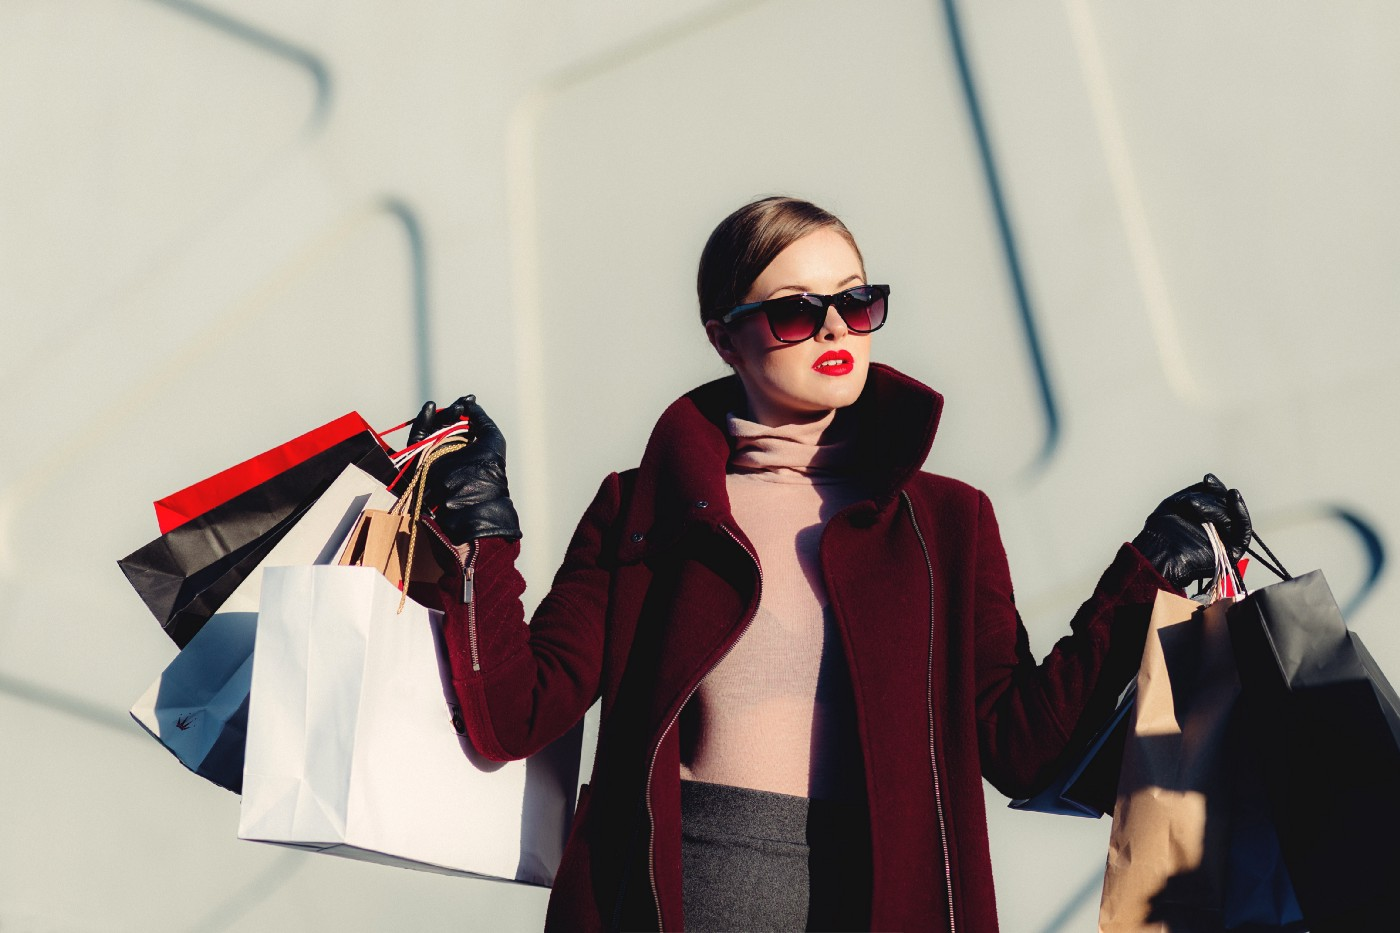 Woman wearing sunglasses and carrying shopping bags